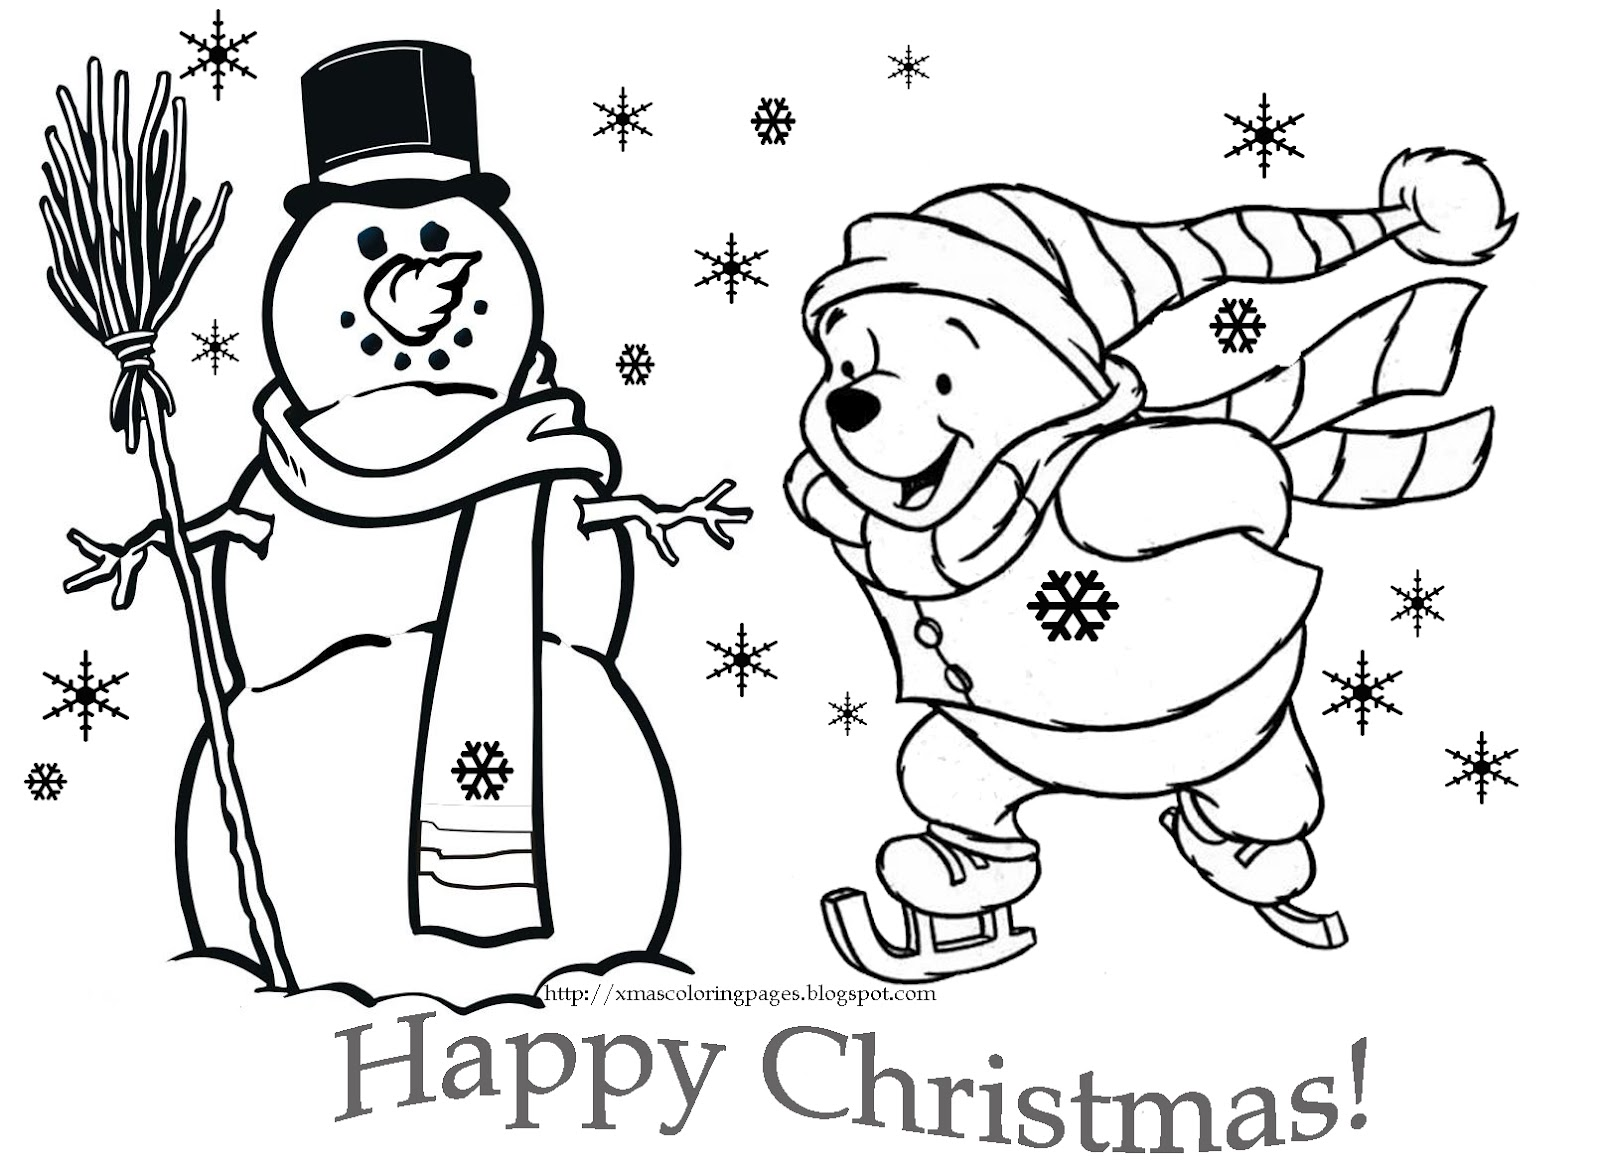 Free Disney Christmas Coloring Pages Printable With DISNEY COLORING PAGES